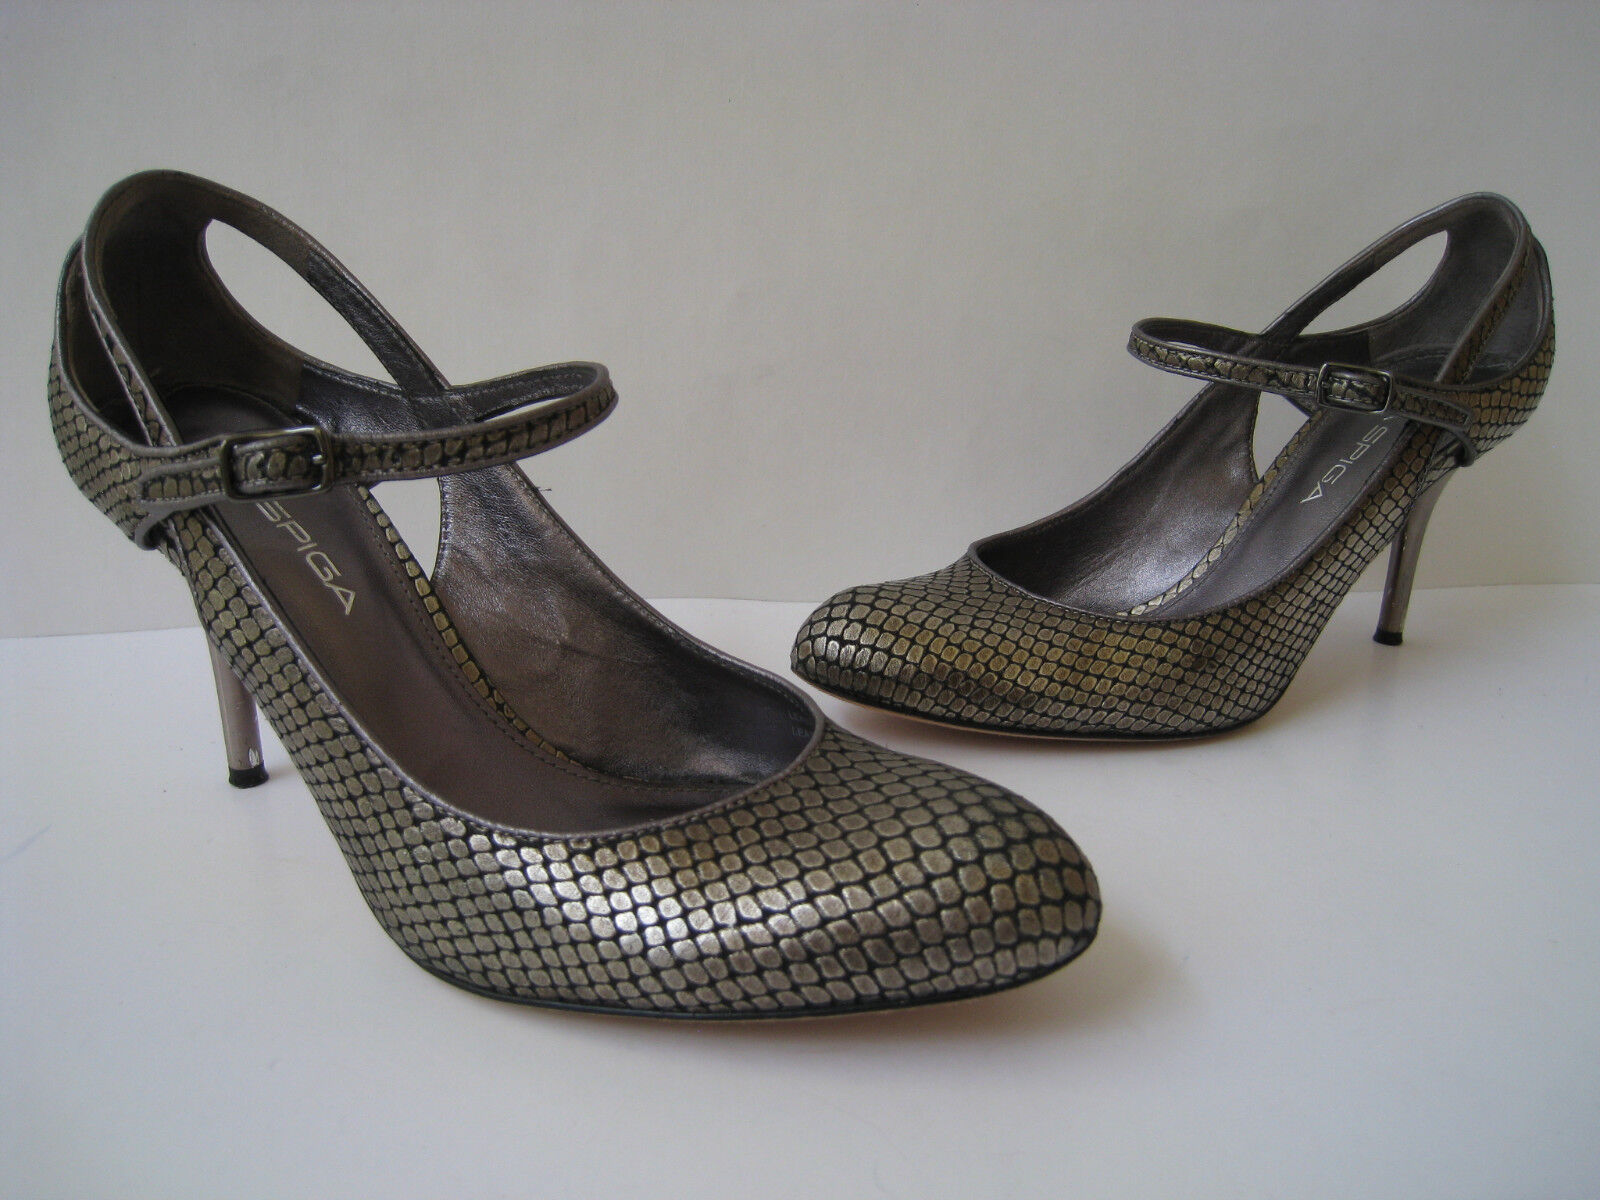 VIA SPIGA SNAKE EMBOSSED METALLIC LEATHER 3